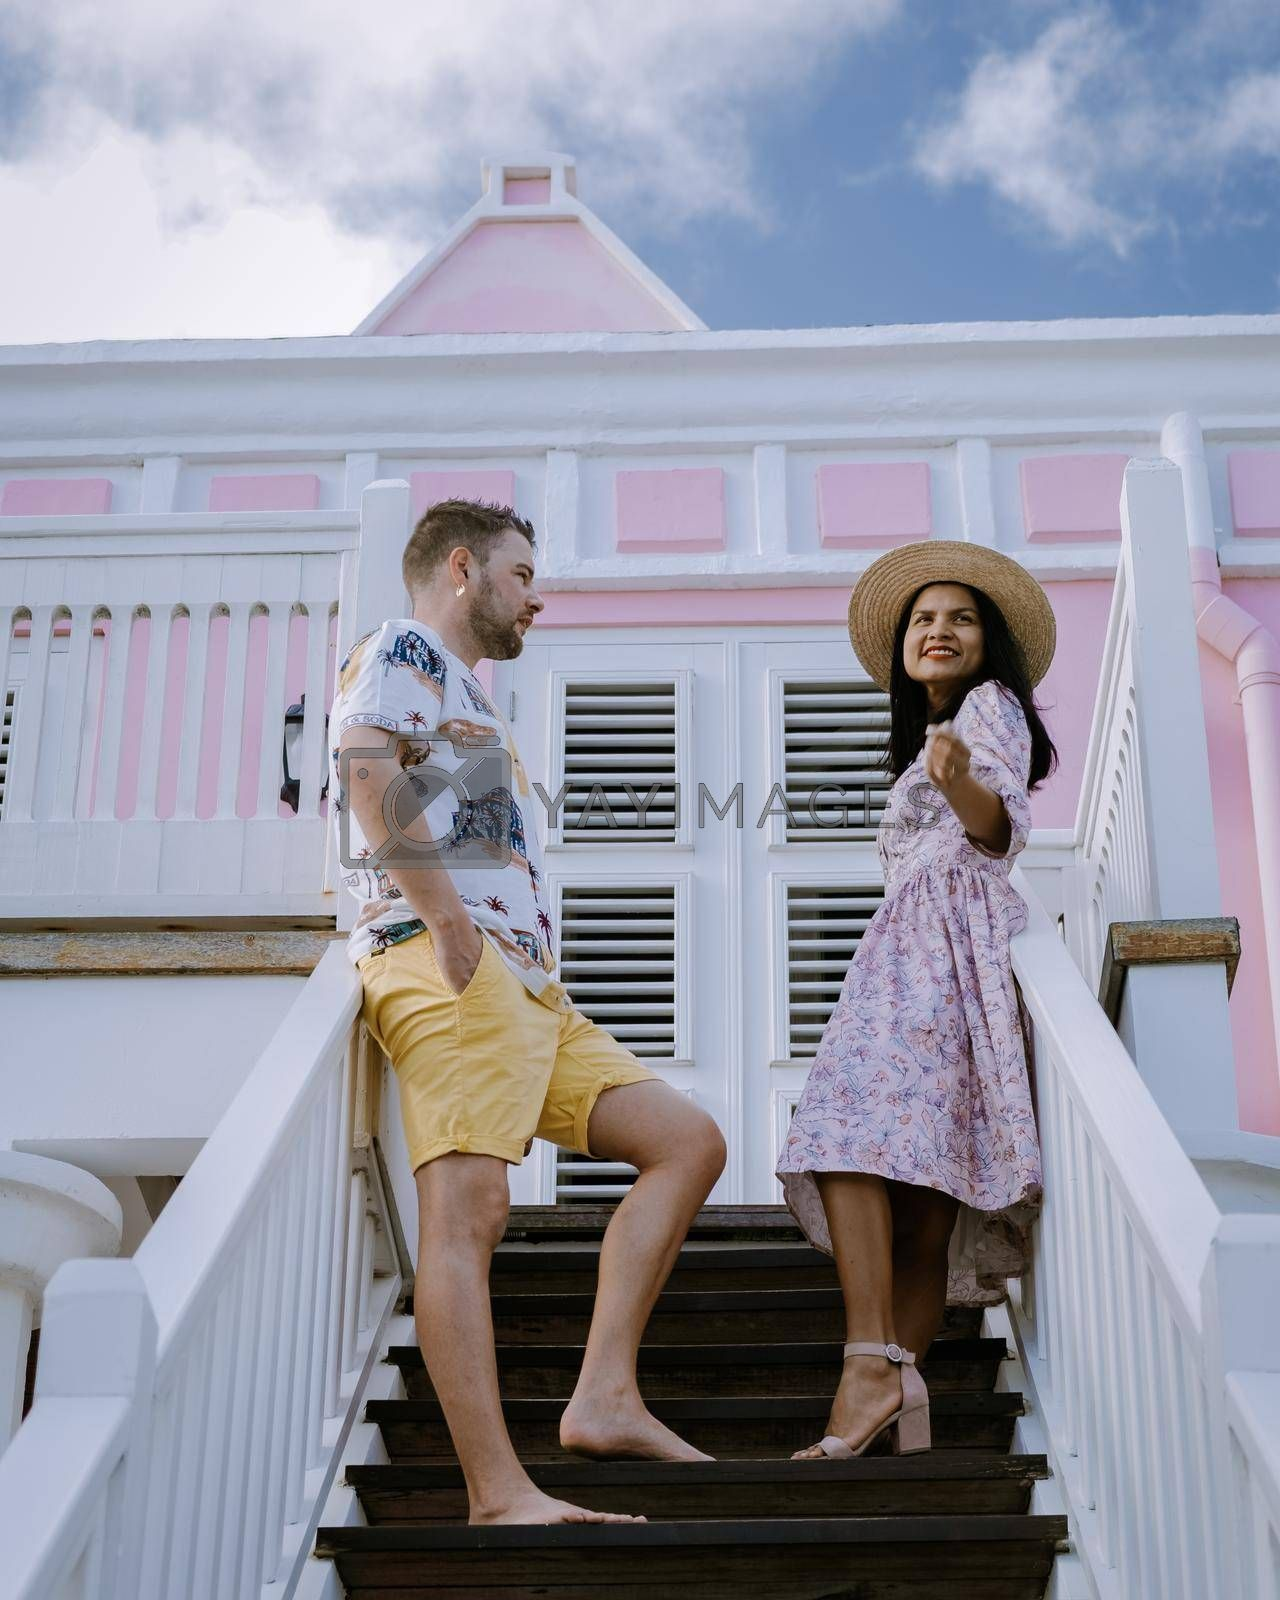 Curacao, Netherlands Antilles View of colorful buildings of downtown Willemstad Curacao Colorful restored colonial buildings in Pietermaai, couple men and woman mid age posing by colorful buildings